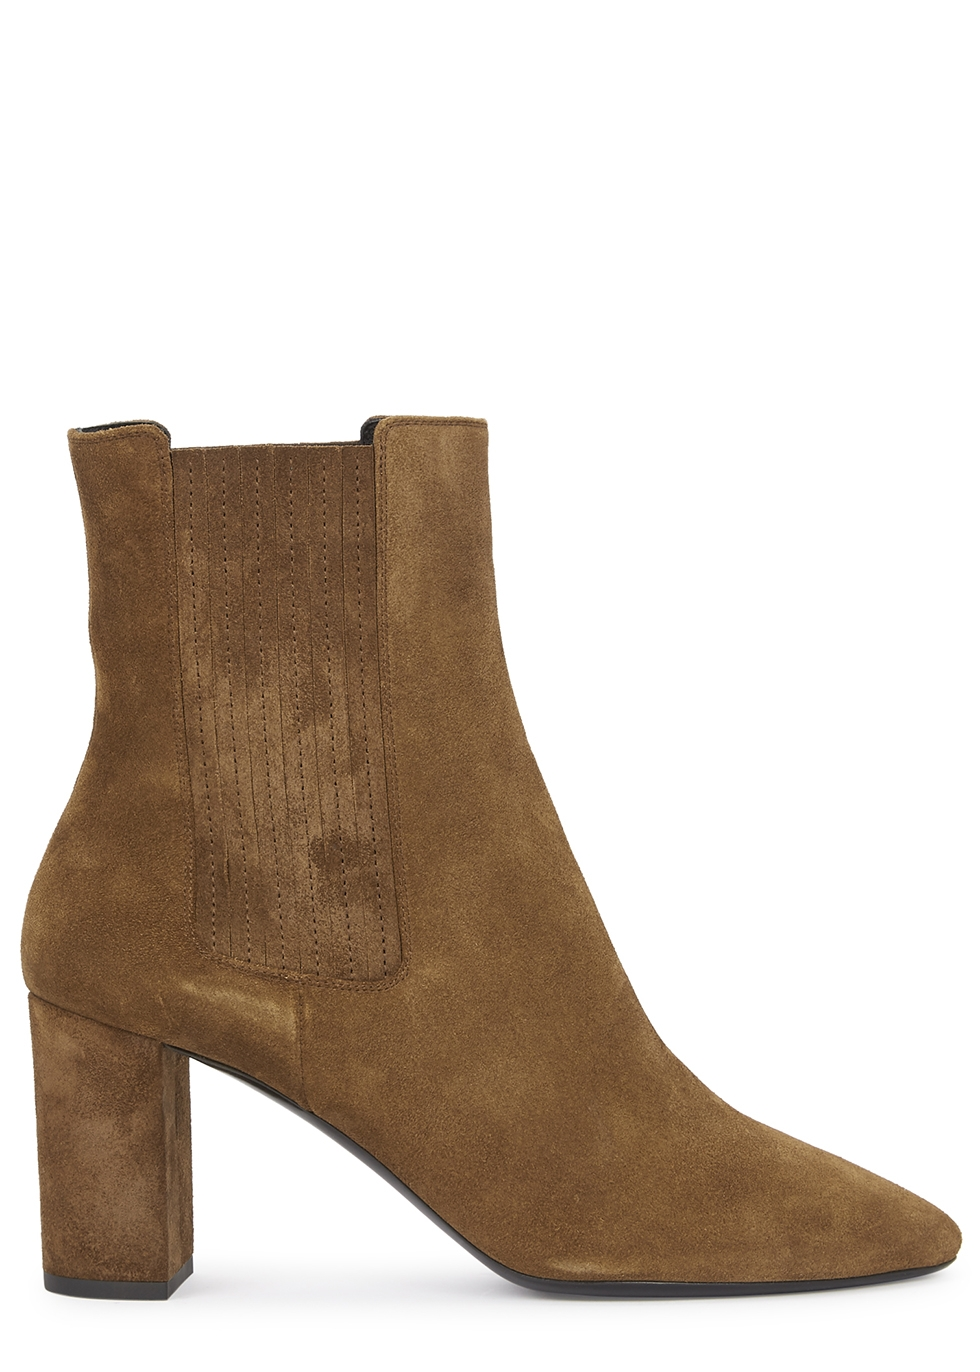 Mica 75 brown suede ankle boots